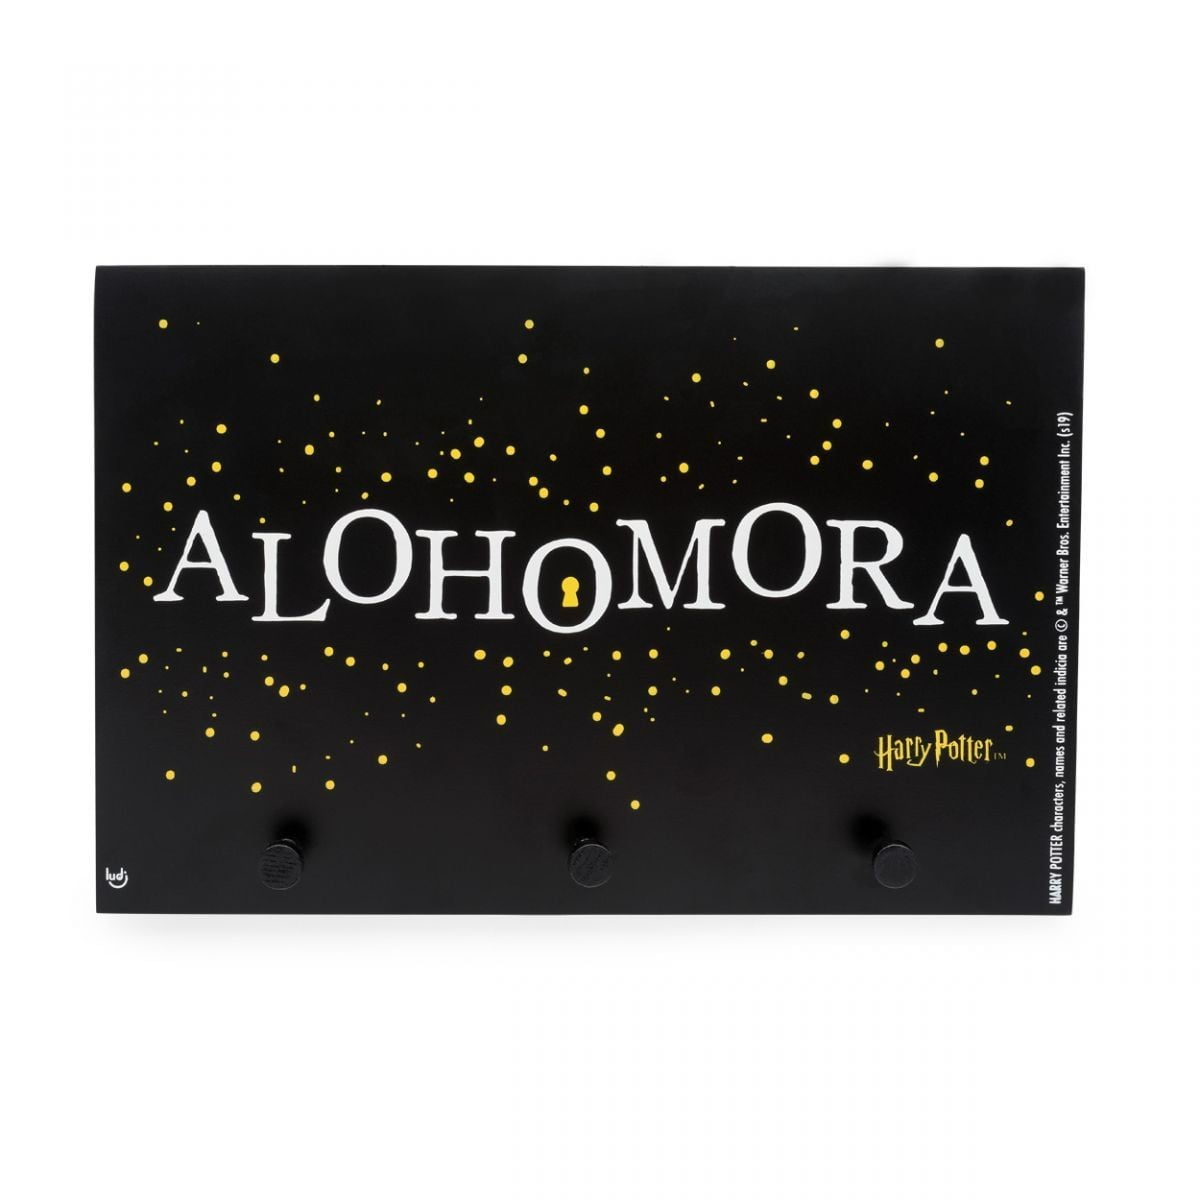 Alohomora - Porta Chaves Harry Potter